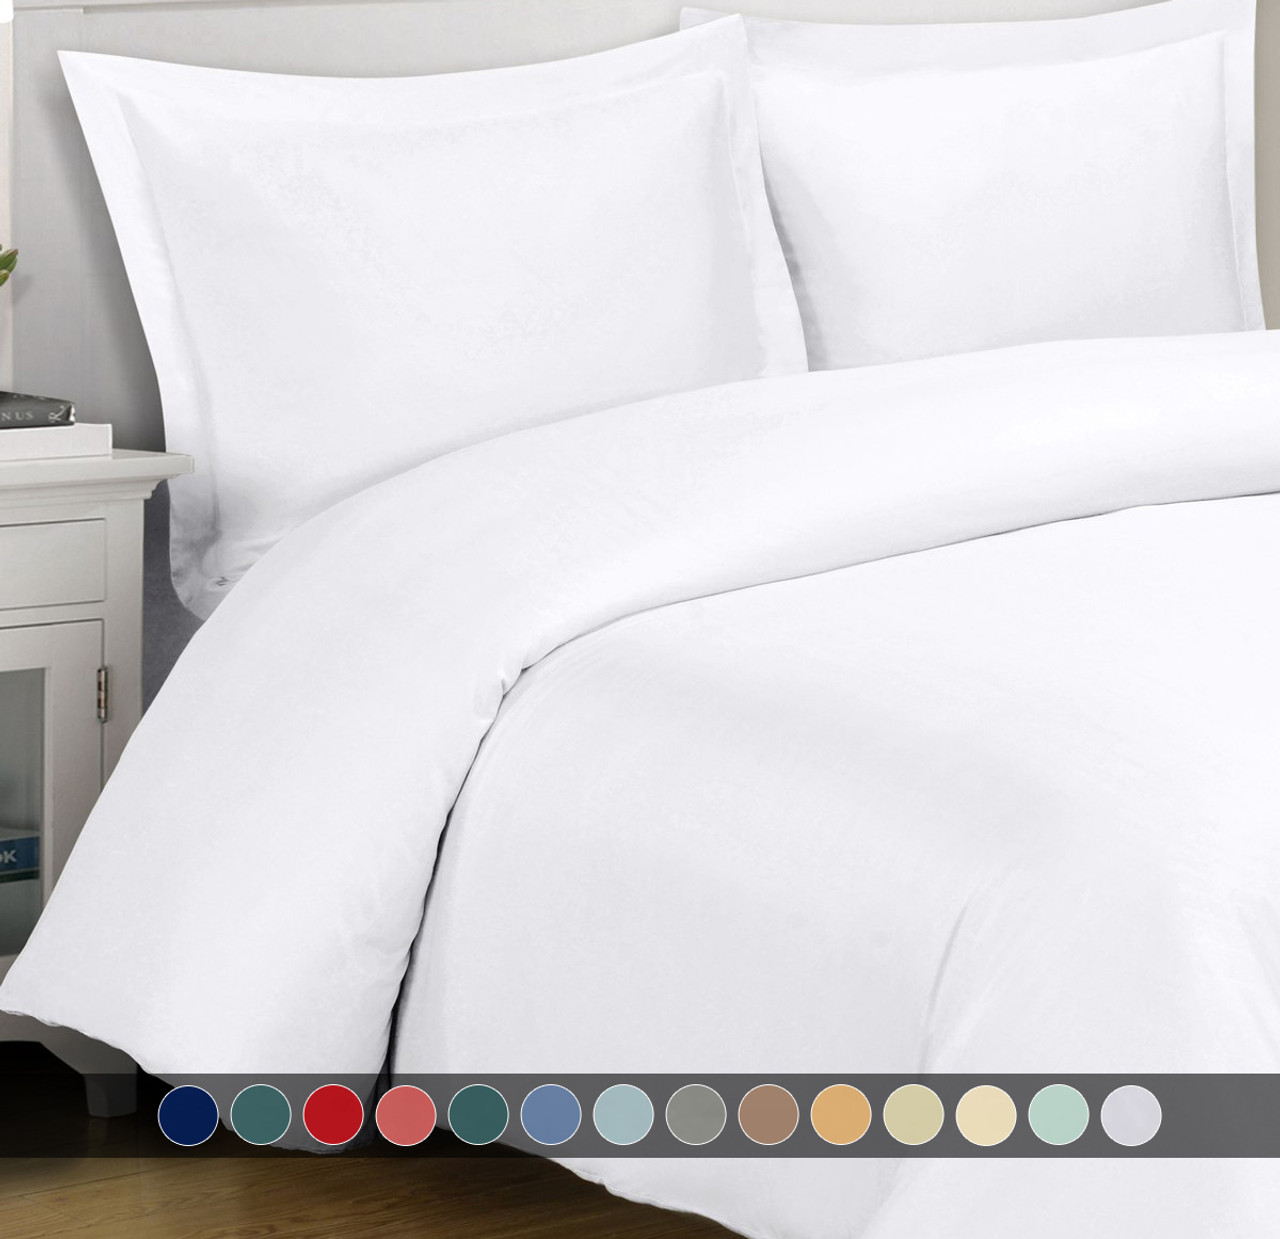 Super Soft 100% Viscose from Bamboo Duvet Cover Sets